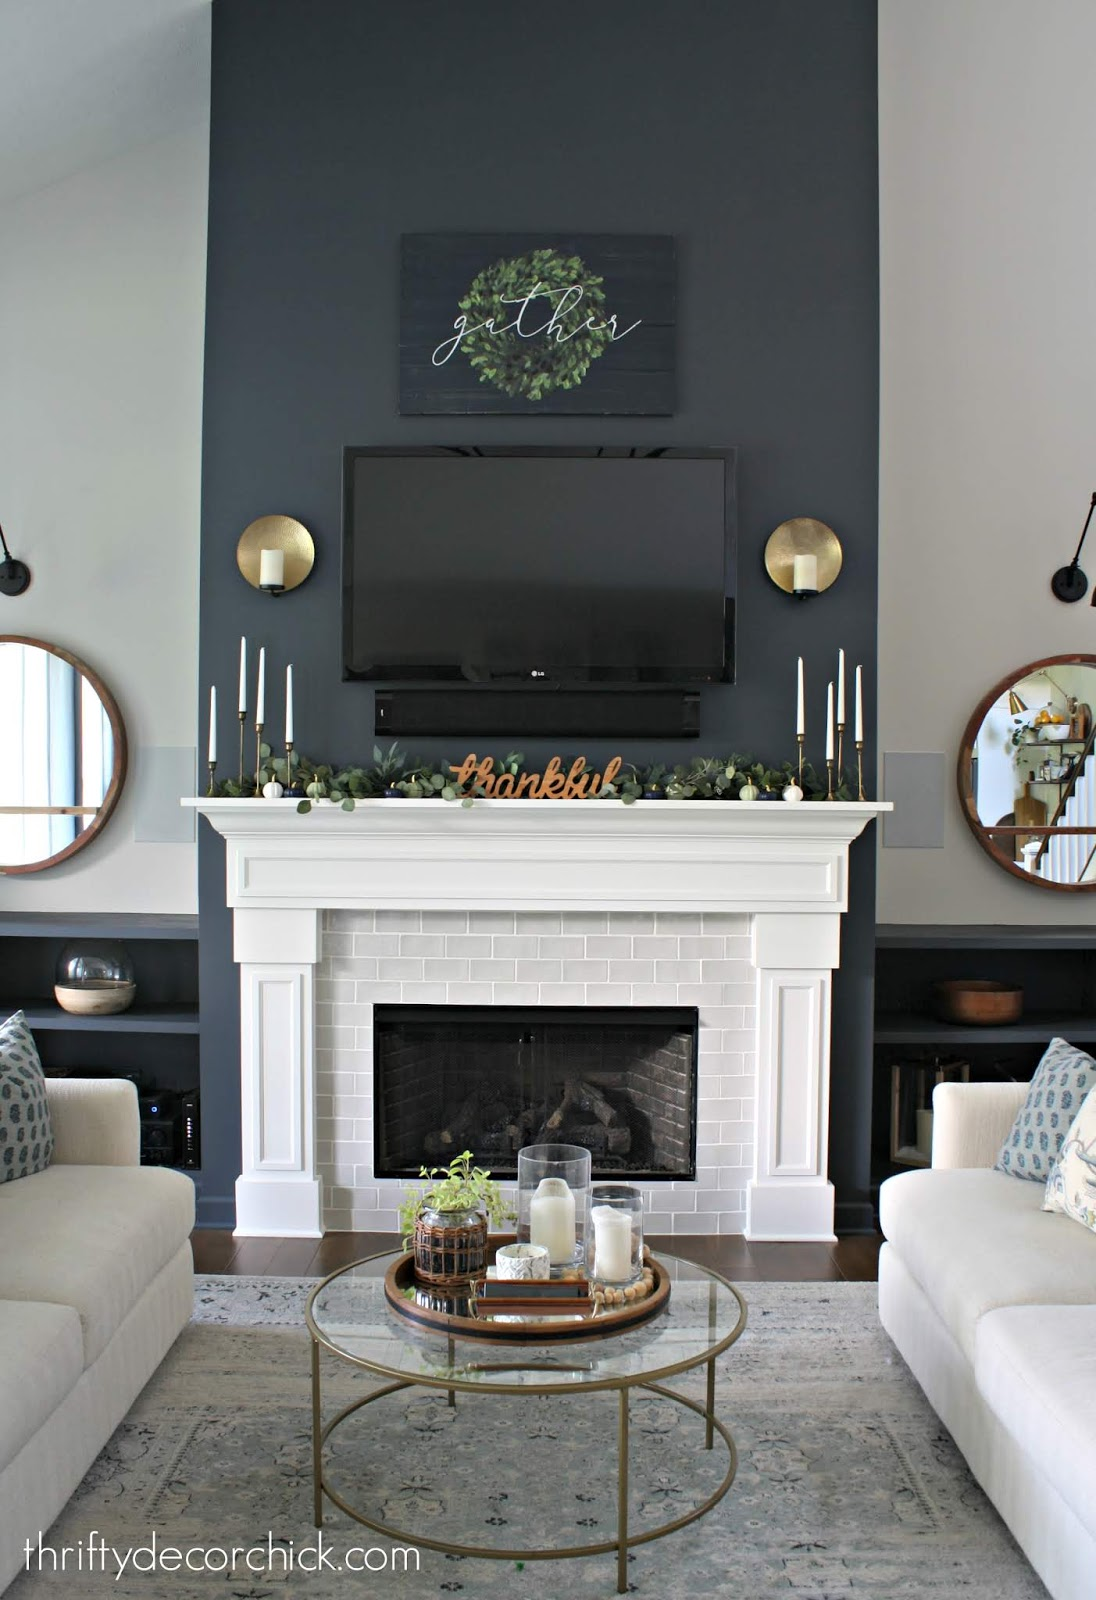 Symmetrical sofa set up with fireplace